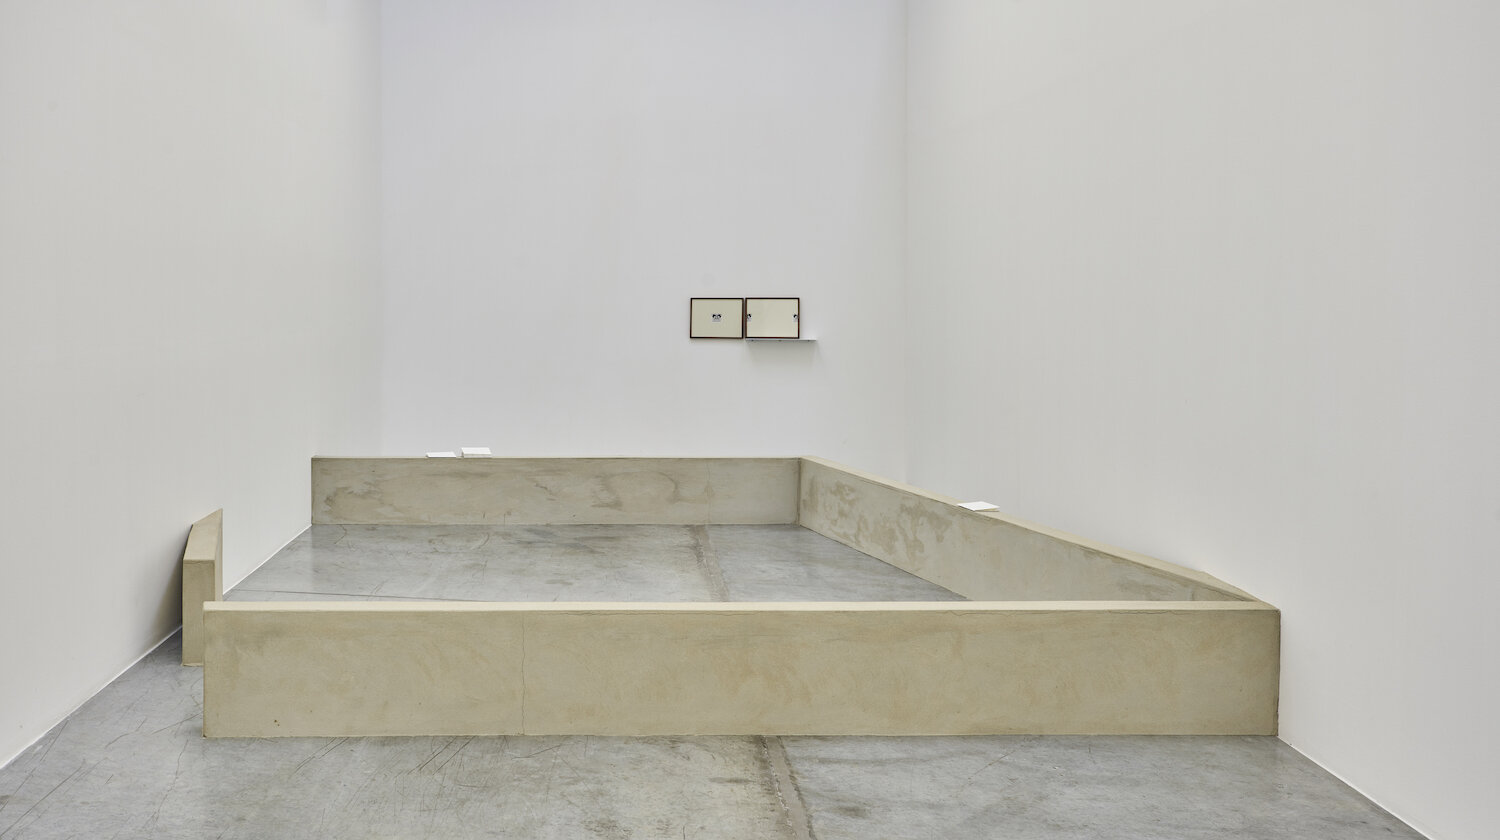 THIS IS A MIRAGE, AN IMAGE, A MONUMENT AND/OR A SHRINE, 2019, cement, sand, concrete board, publication (PUBLICATION + WALL)